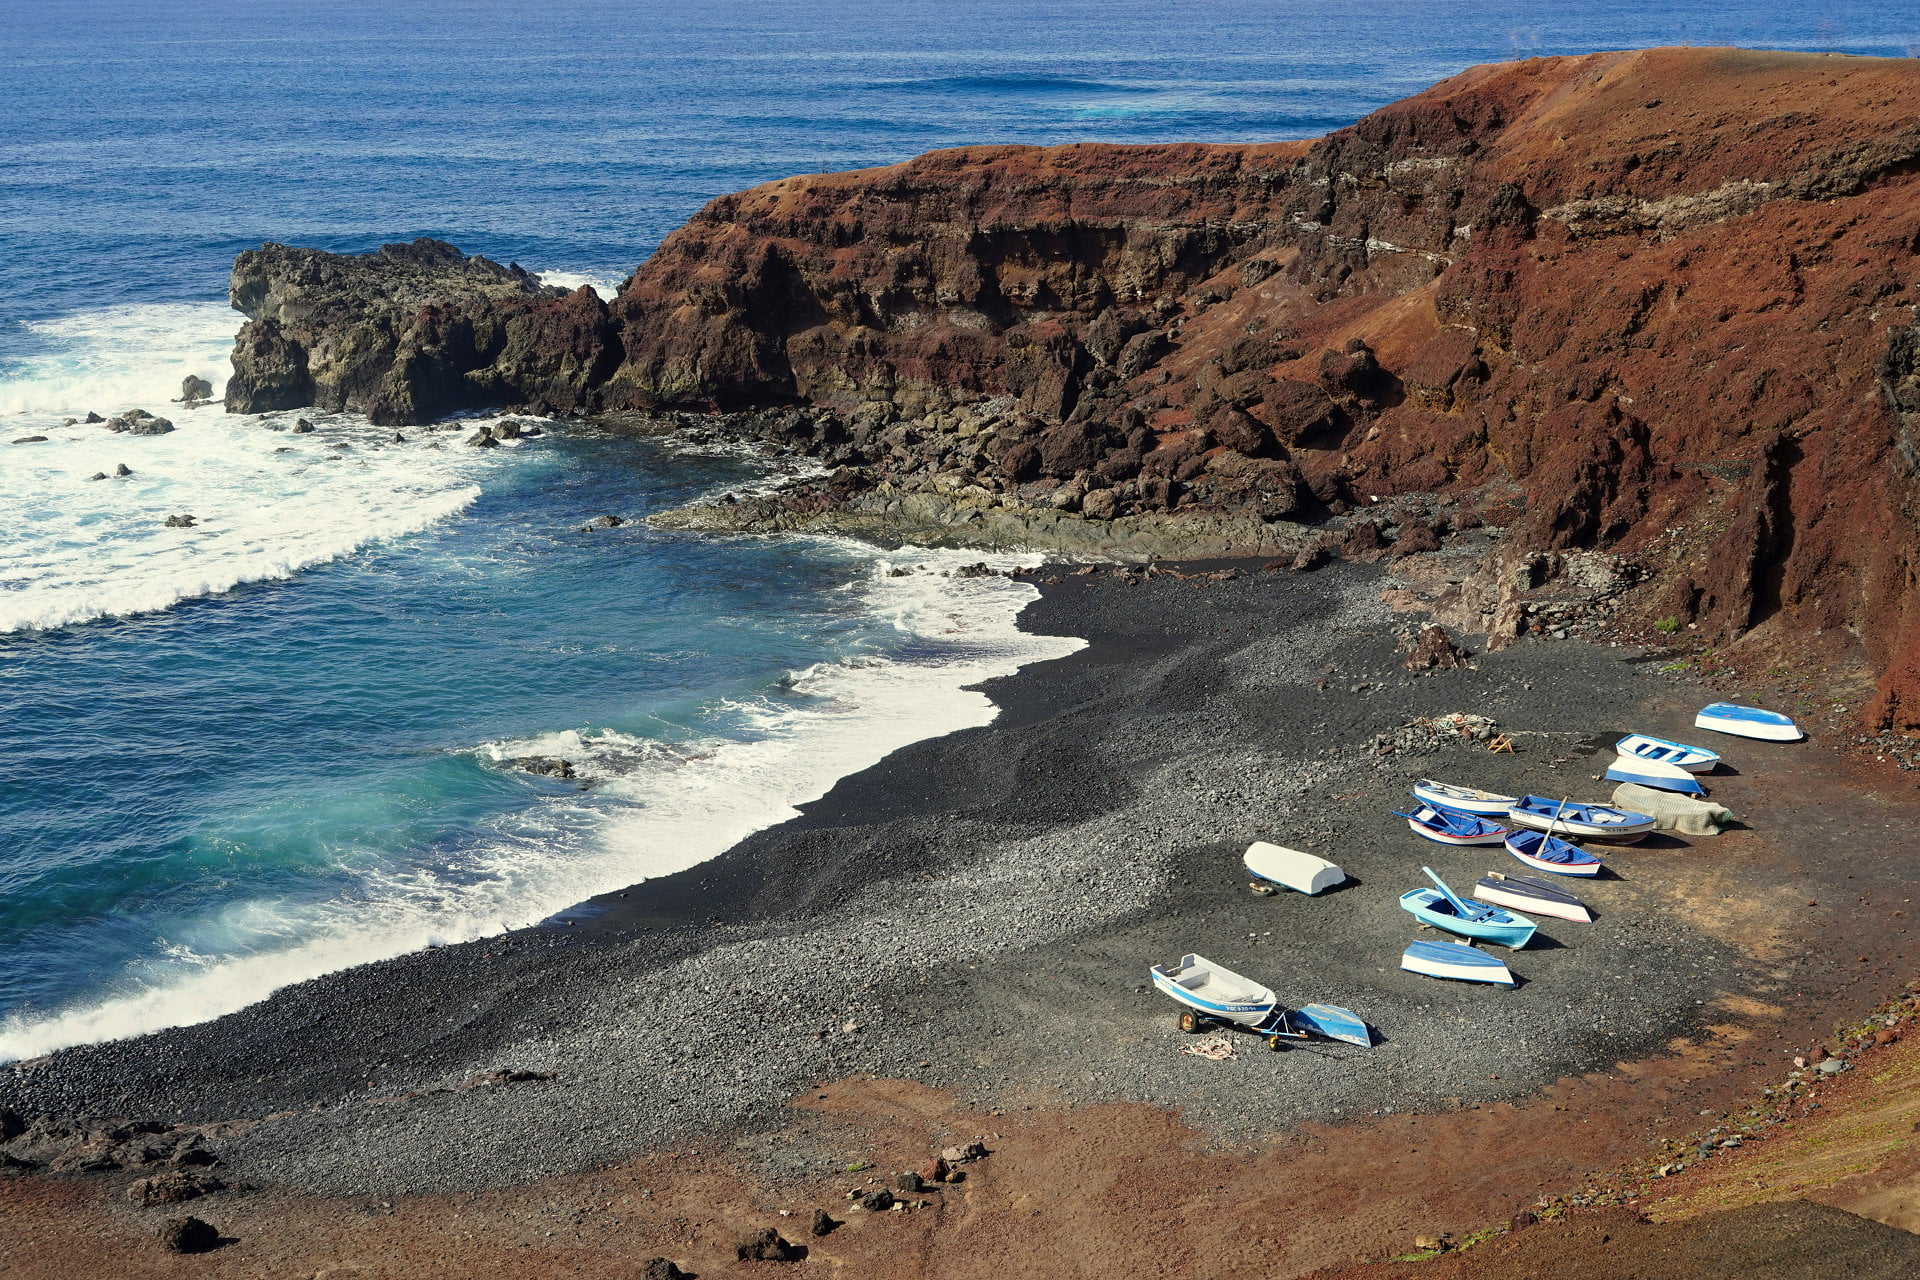 Small boats on a black beach near El Golfo, Lanzarote.